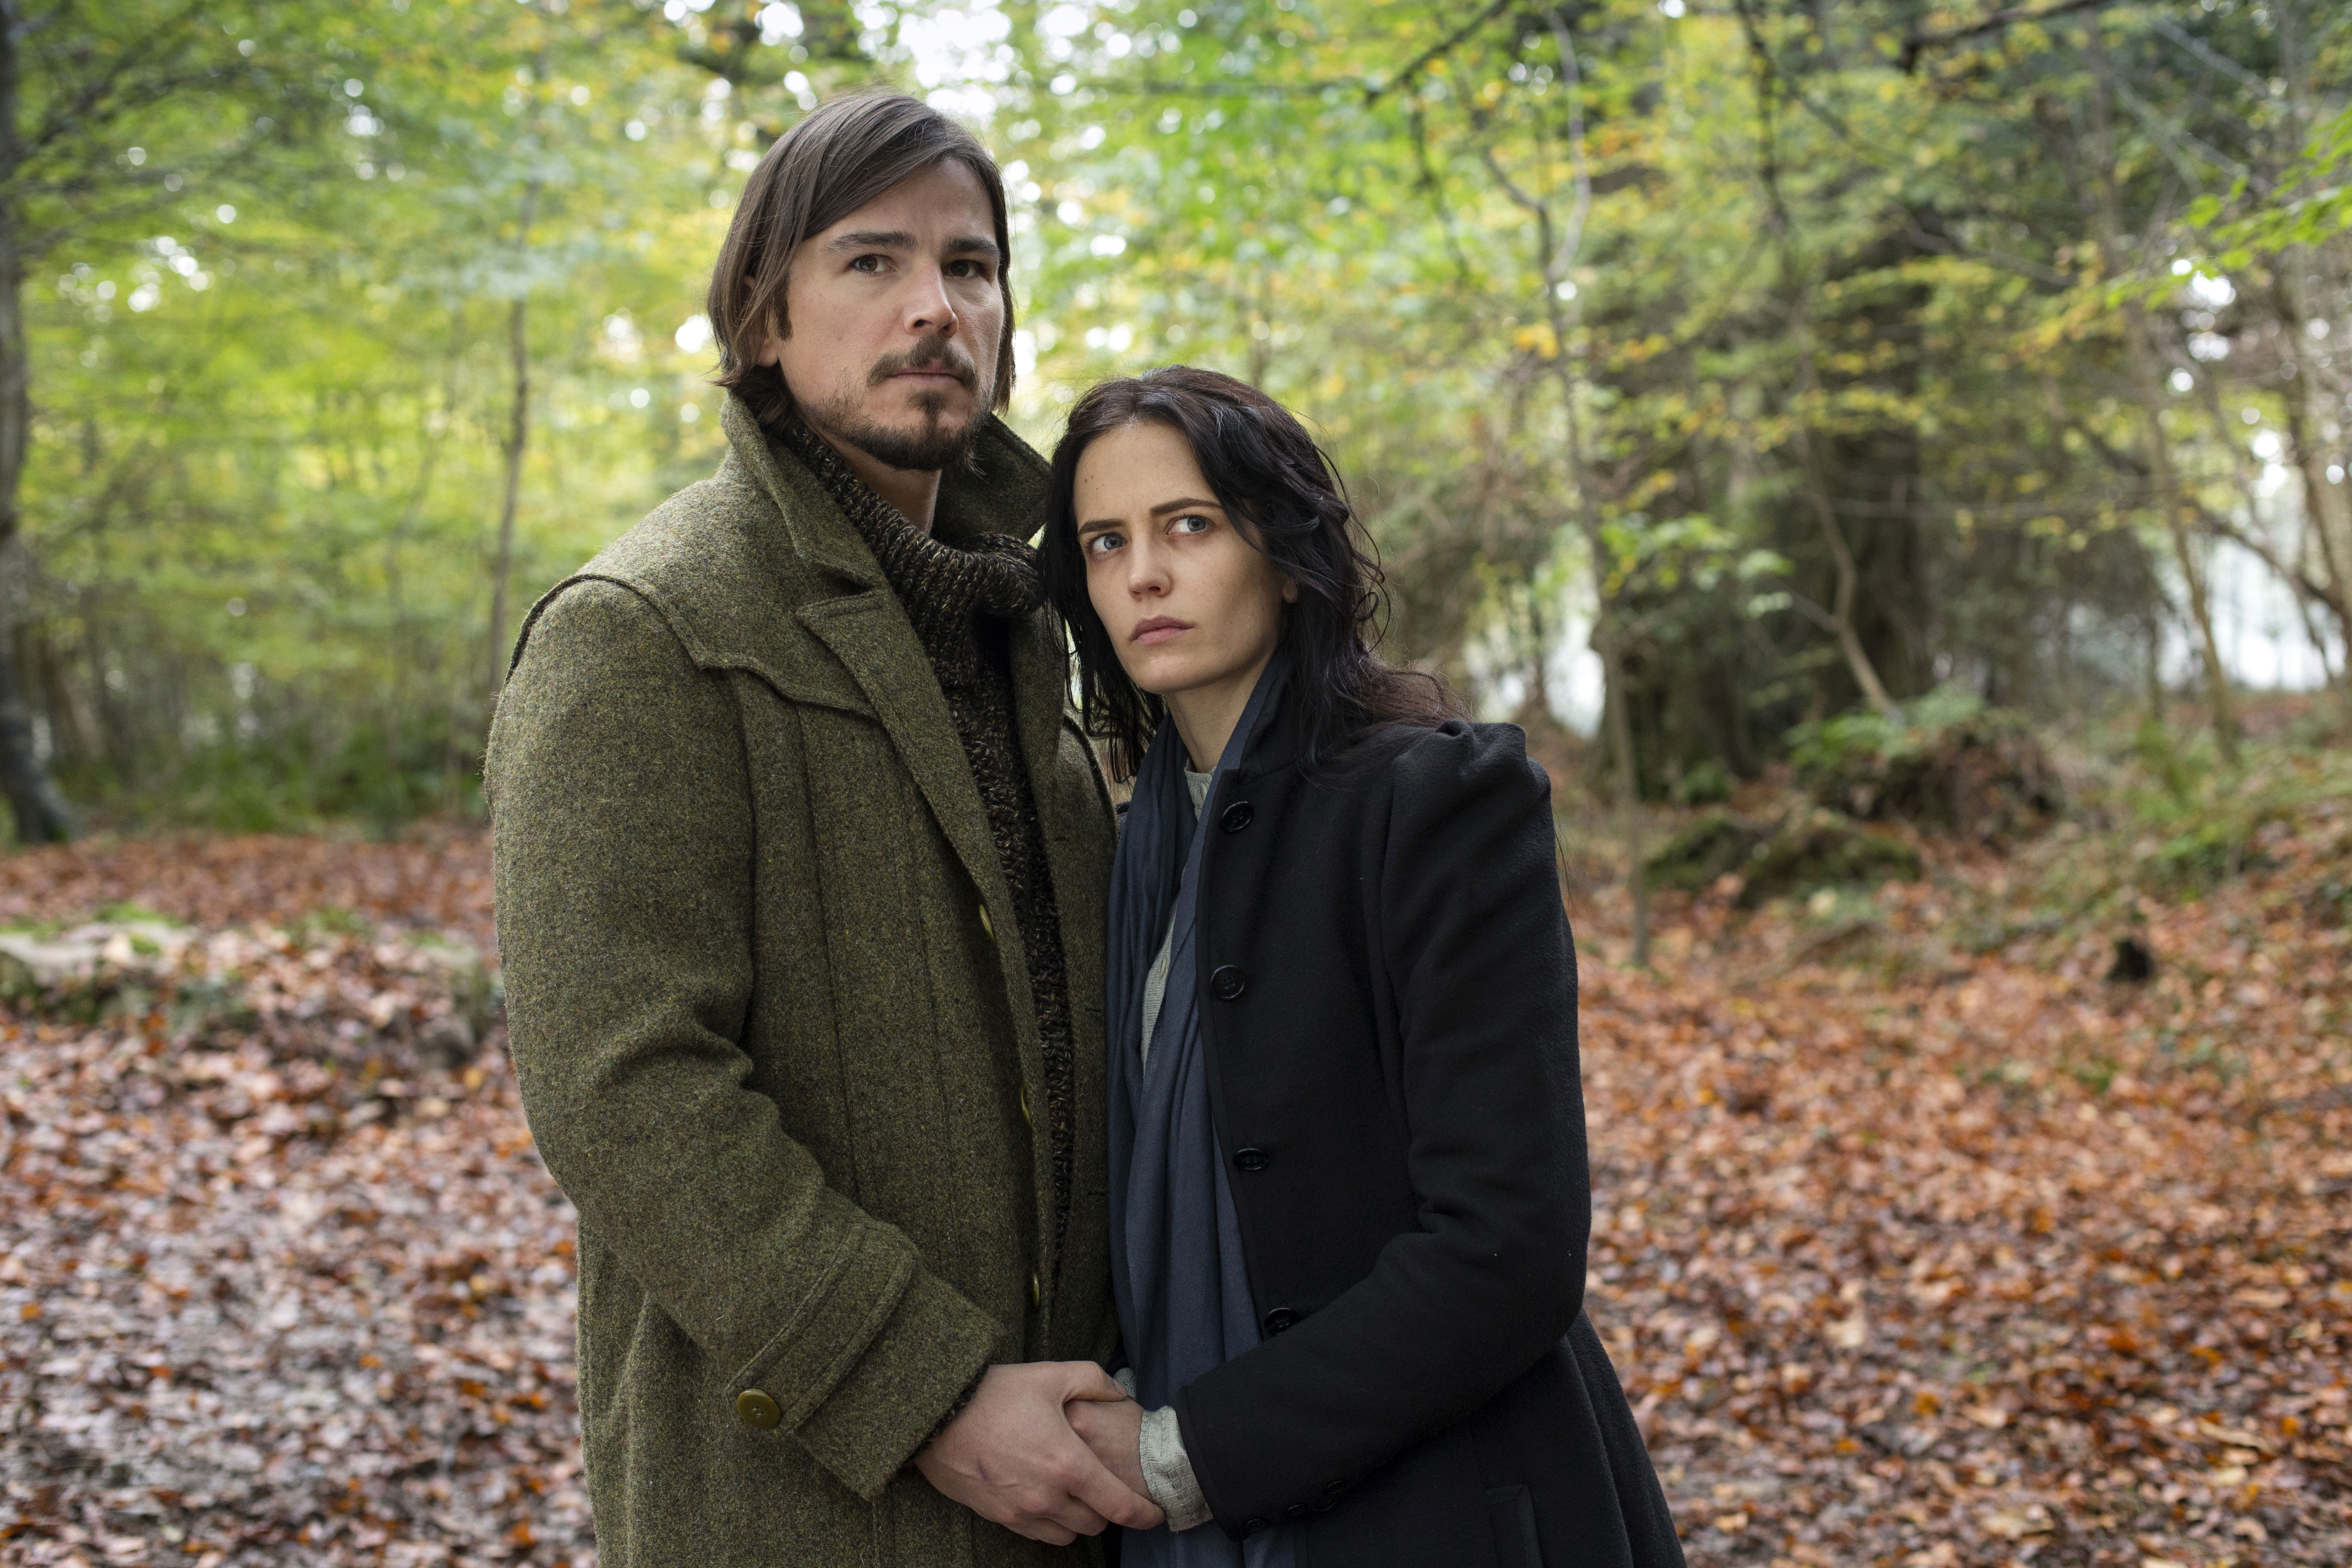 penny-dreadful-season-2-eva-green-josh-hartnett